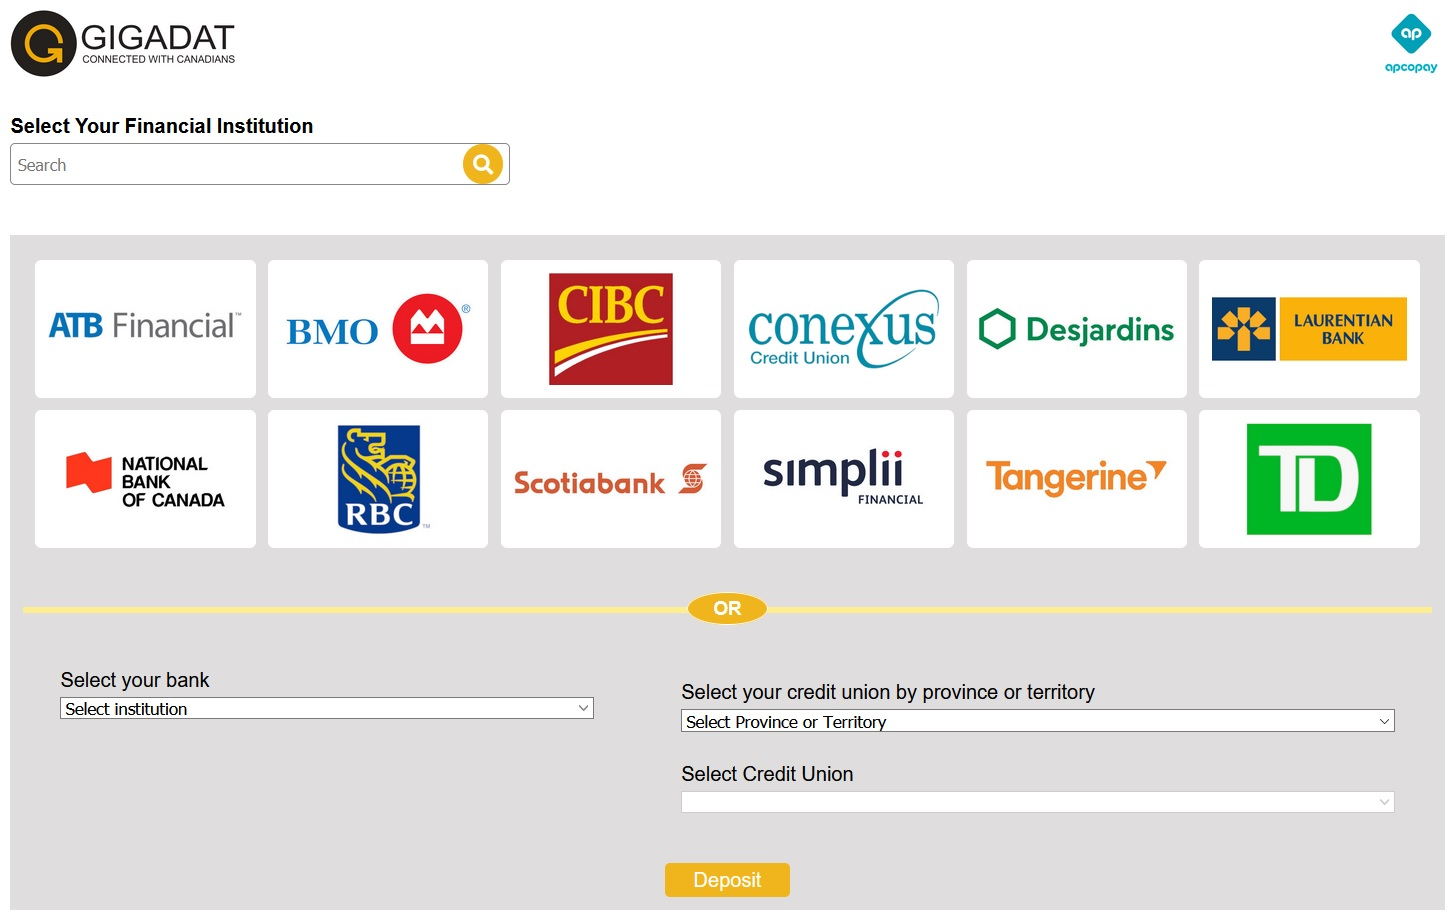 interac-deposit-bank-selection-page